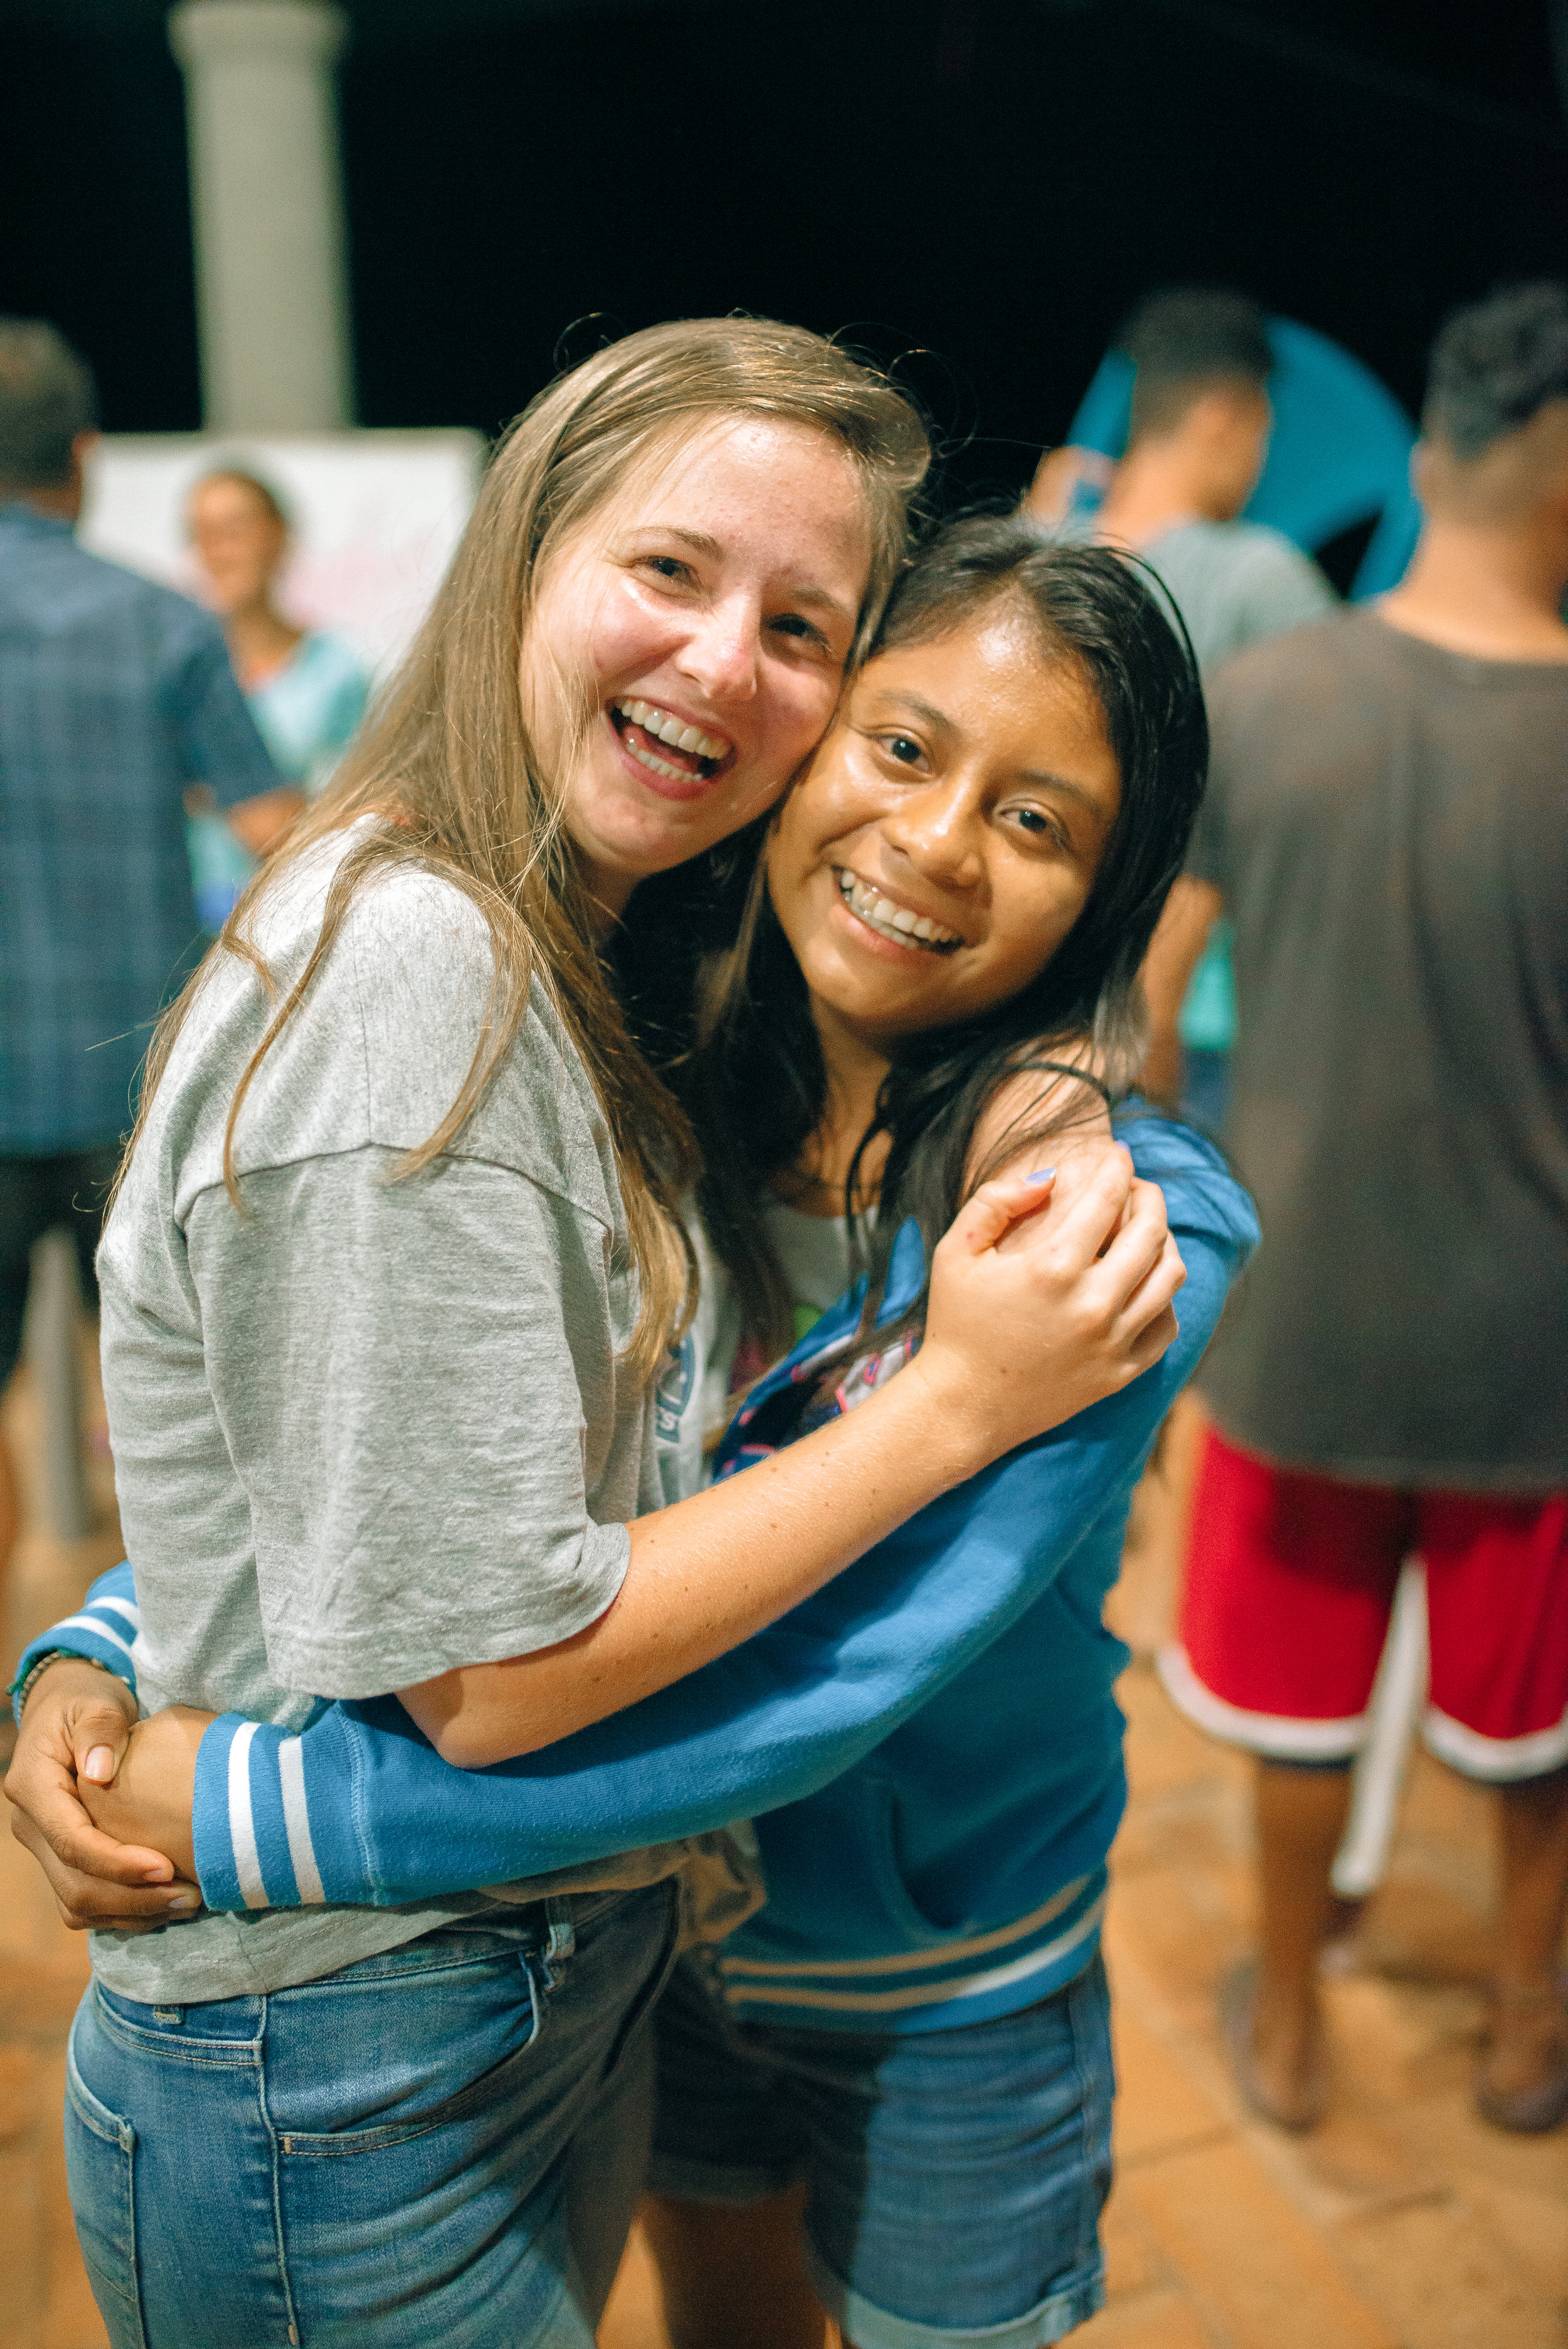 Lauren and Salvadoran intern, Doris, are the same age. Through they live in different countries and cultural contexts, they are united as bible students as they serve God and their communities.